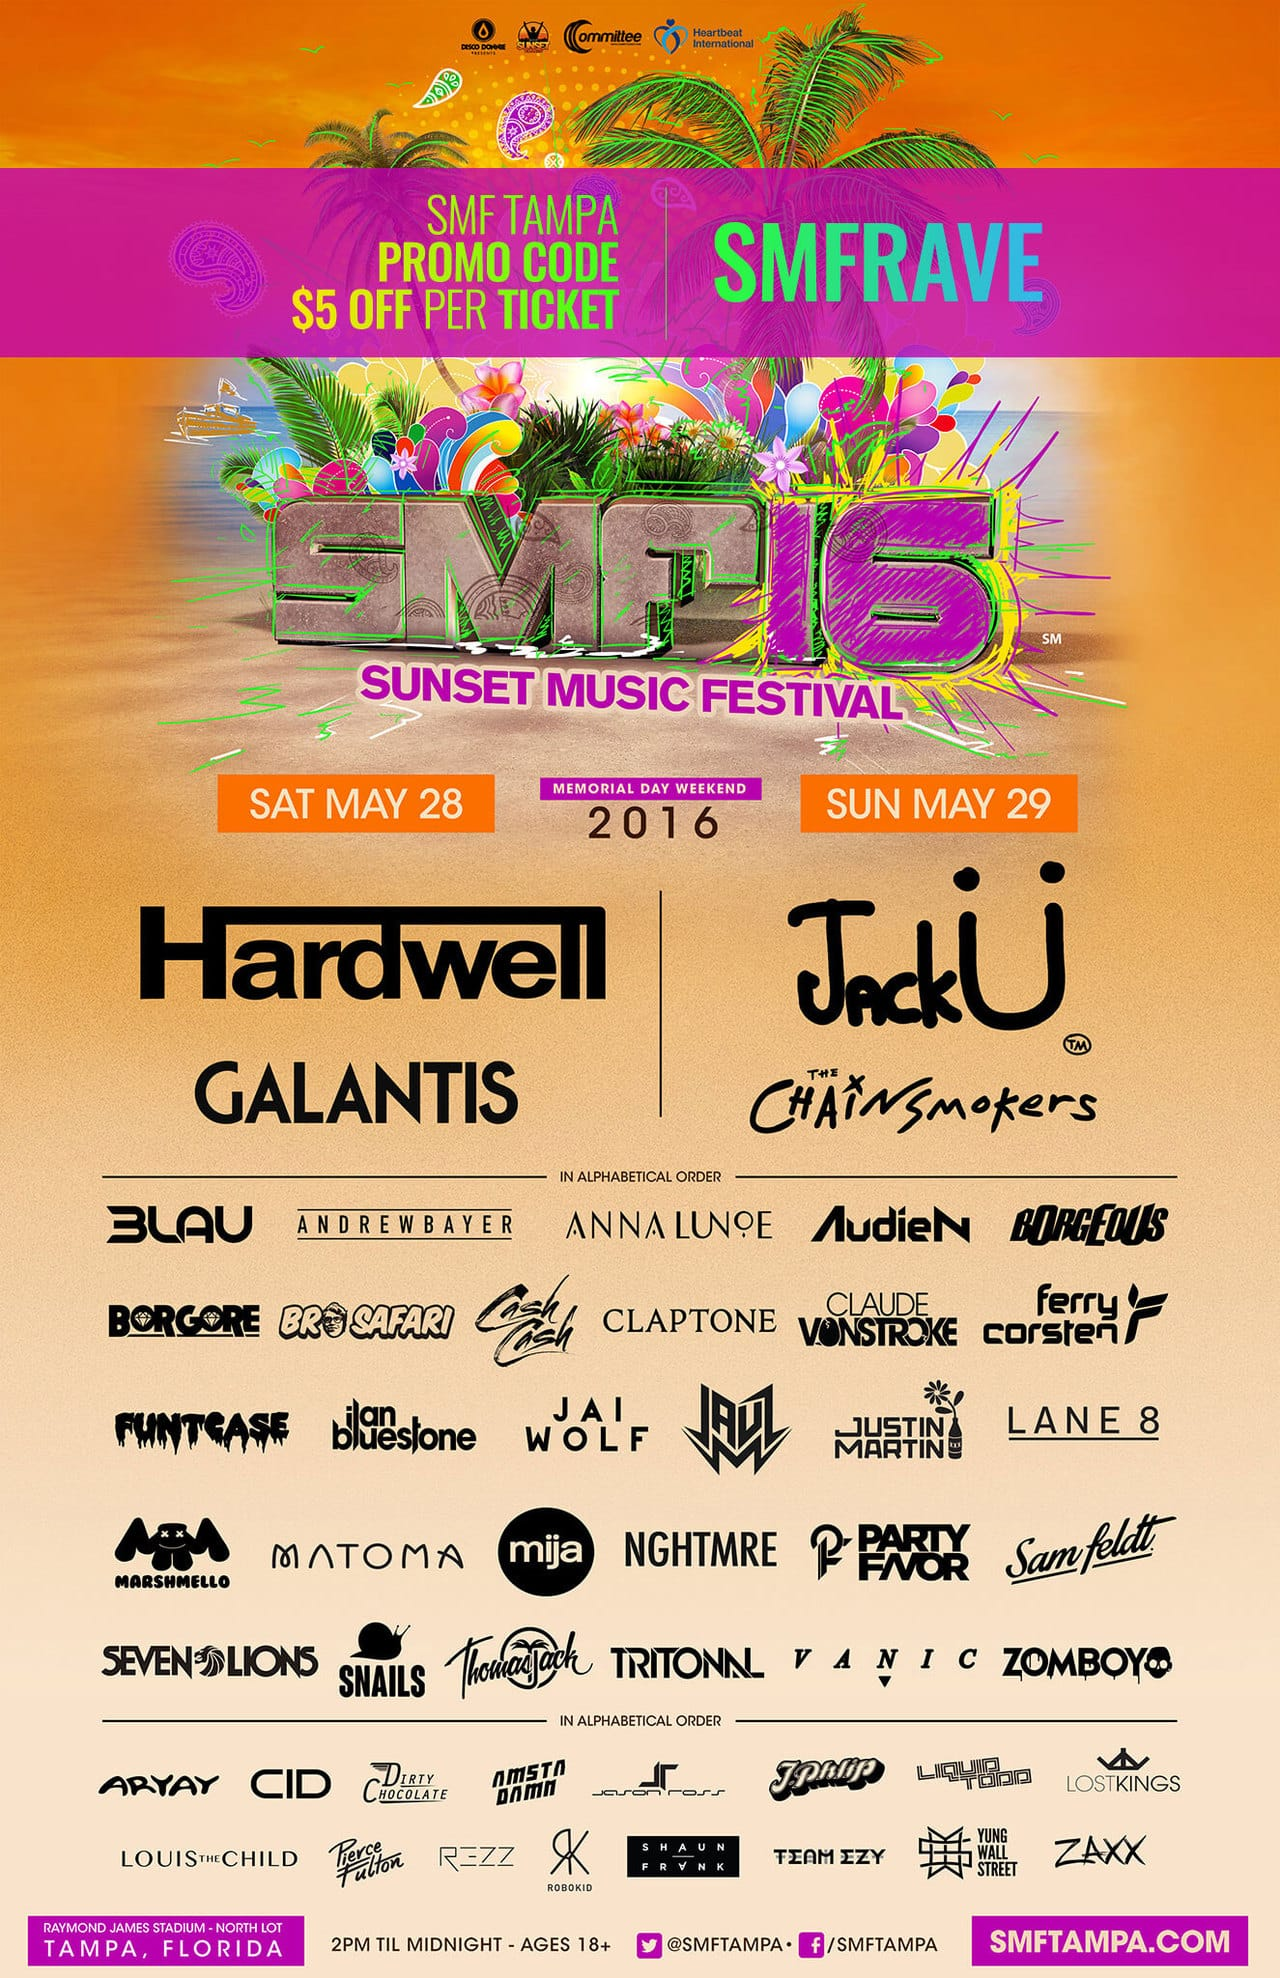 sunset music festival 2016 review tampa groove cruise chris